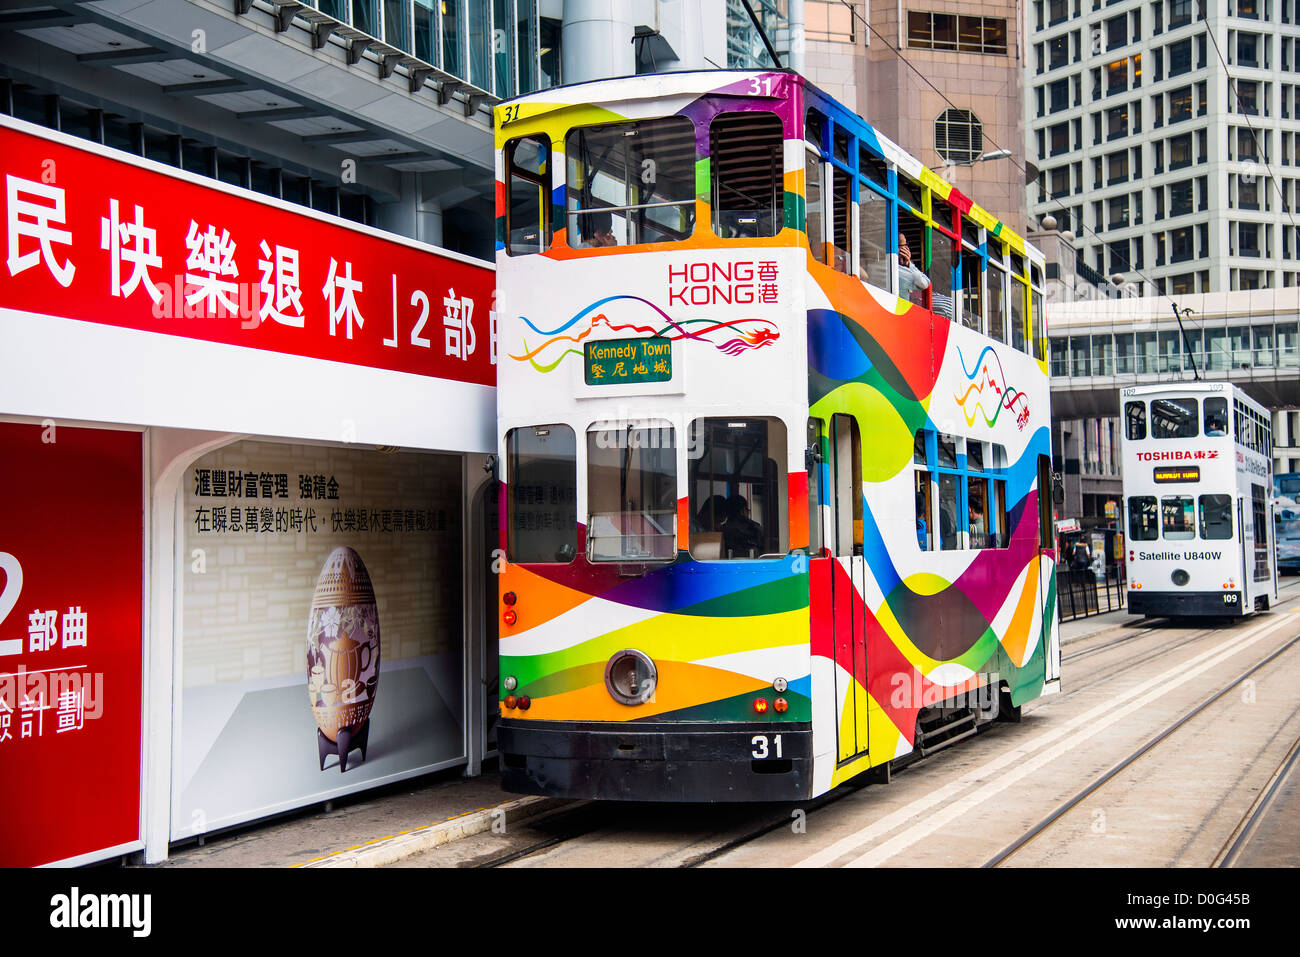 Colorful Hong Kong double decker tram at Queensway, Hong Kong, China - Stock Image